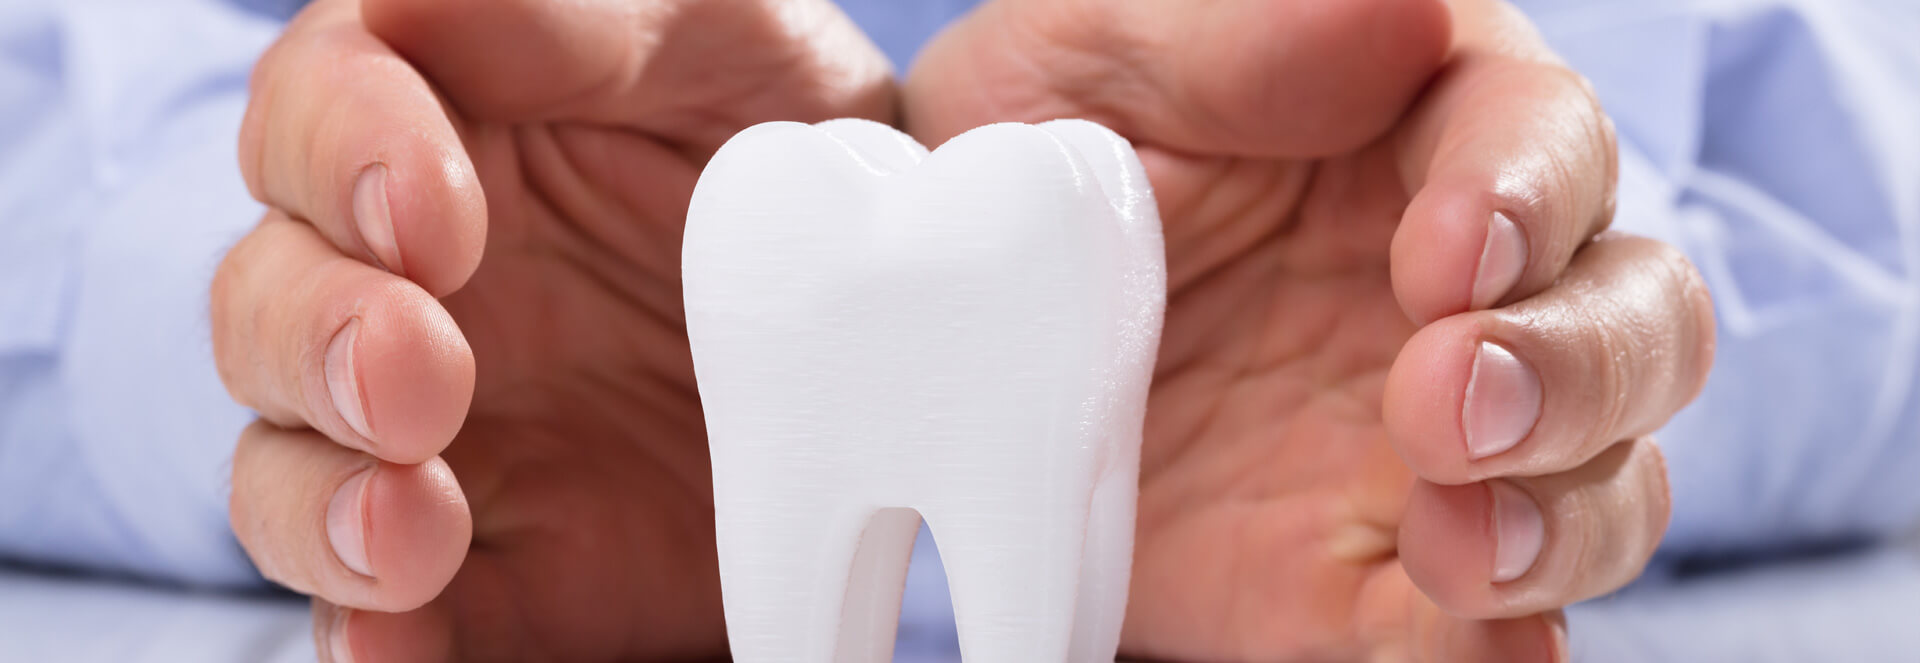 Protecting a artificial tooth with hands